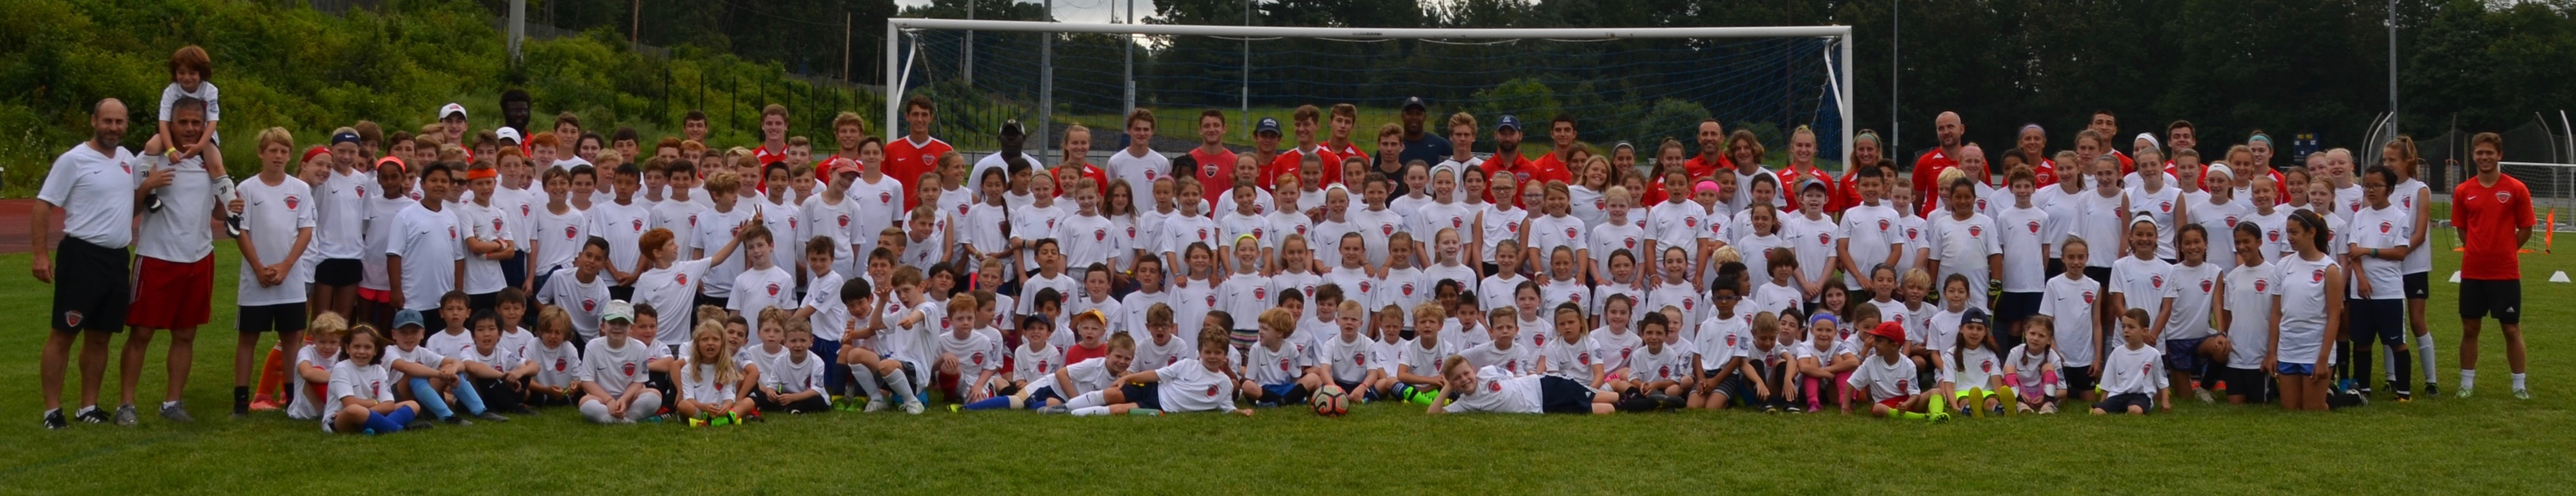 MAP Youth Camp 2019 - Needham